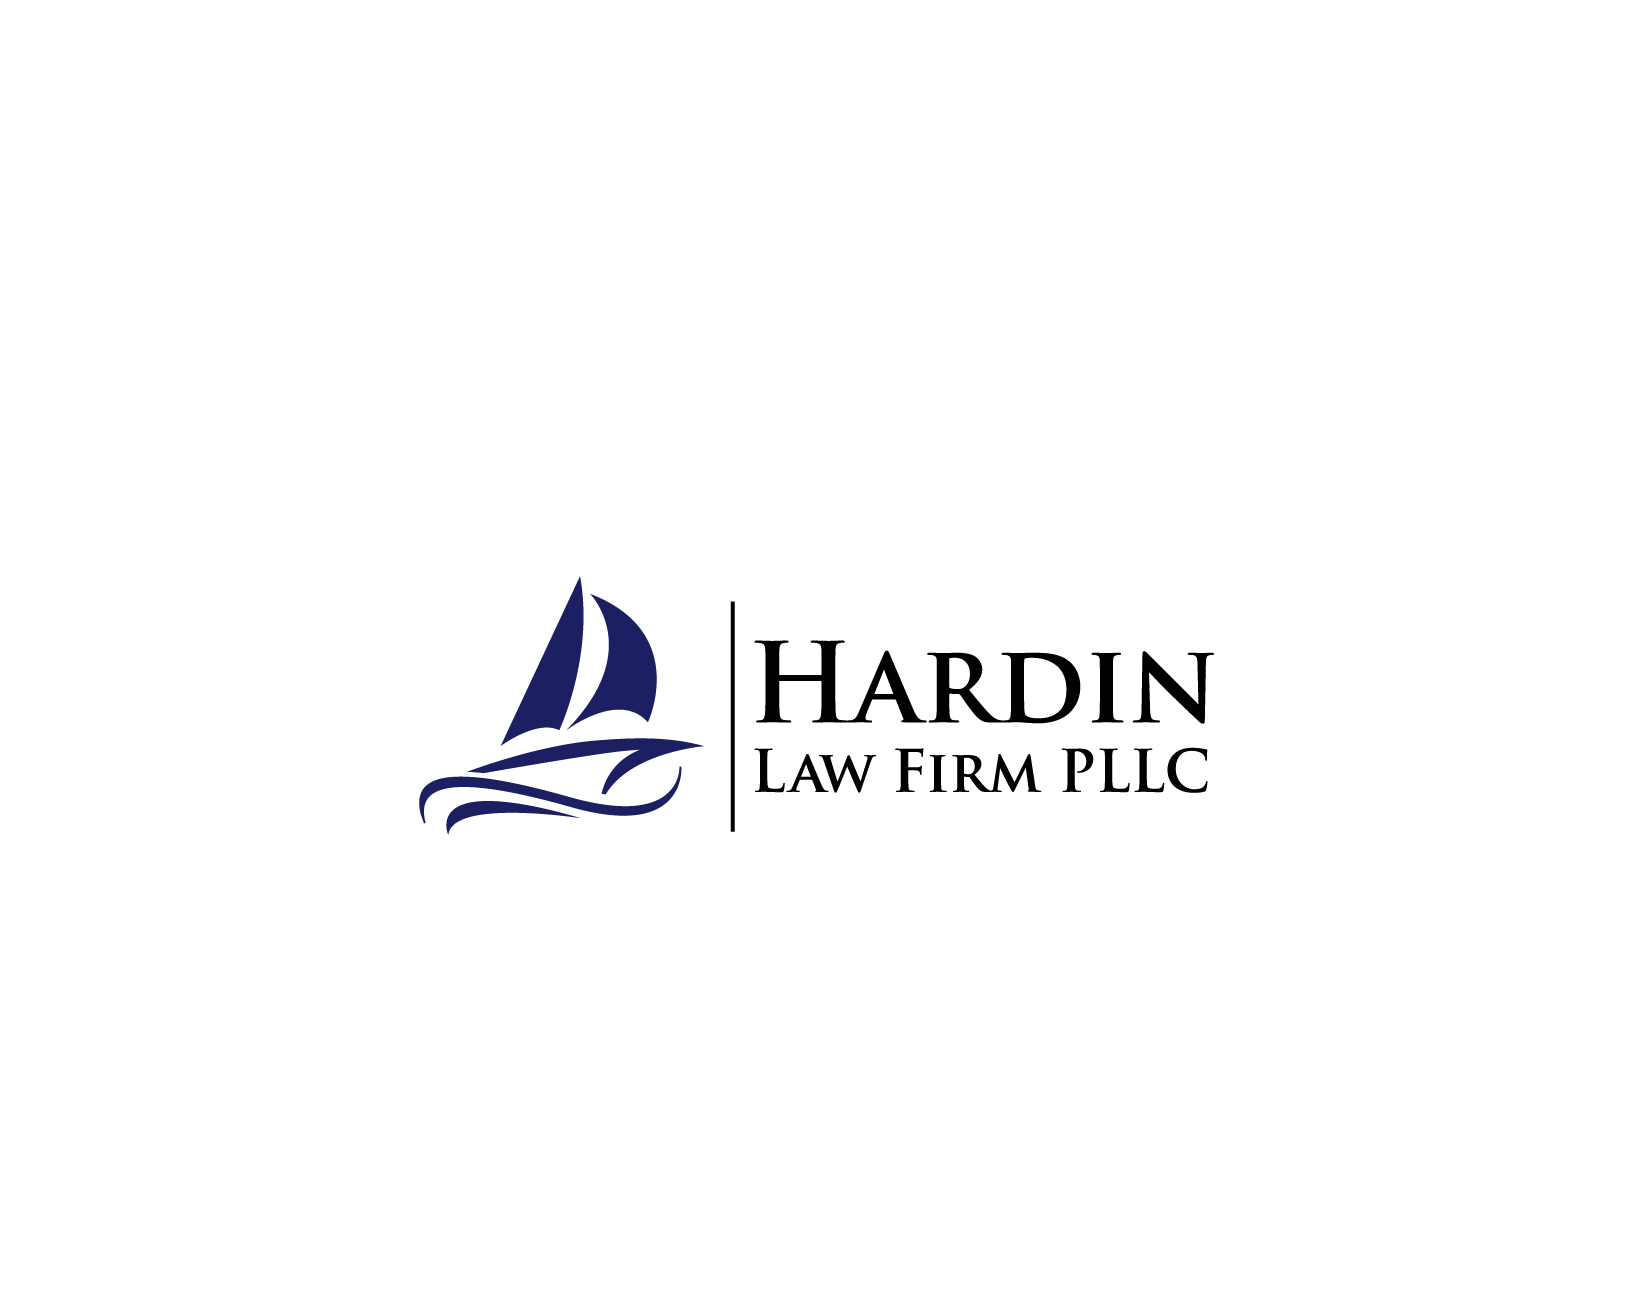 The Hardin Law Firm, PLLC